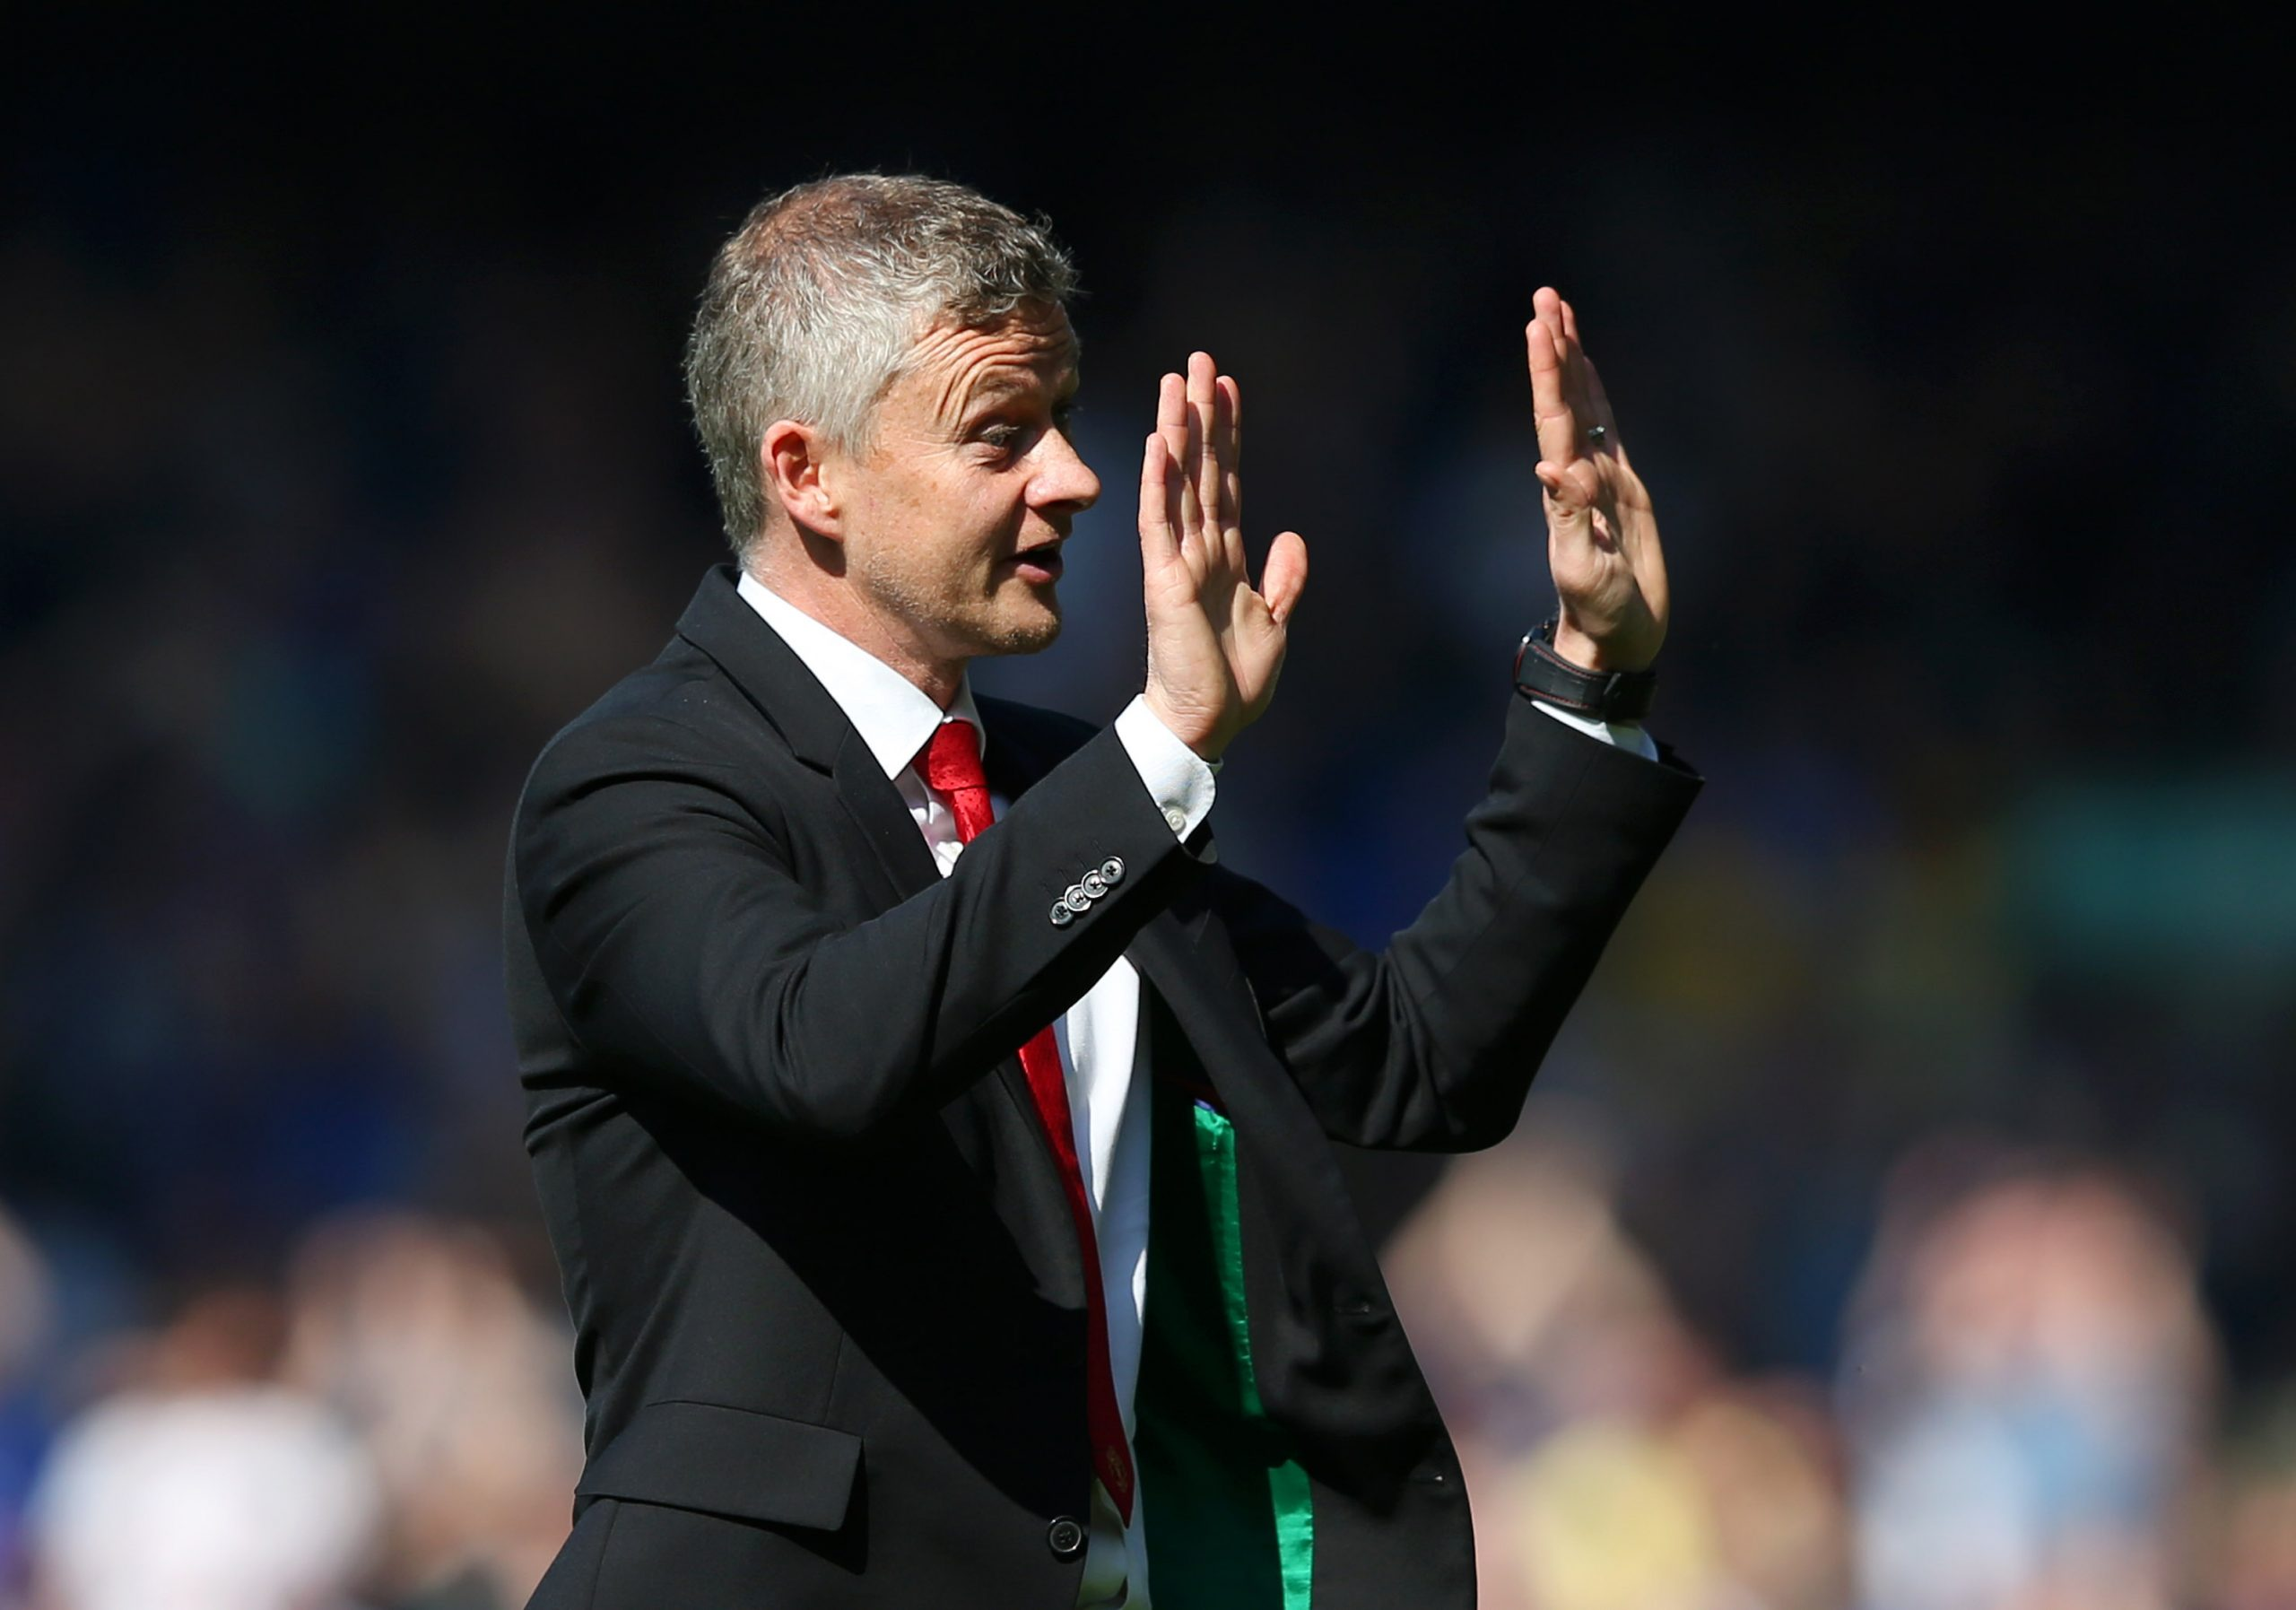 Ole Gunnar Solskjaer believes that contrary to popular narrative, Manchester United are not favoured by referee decisions. (GETTY Images)